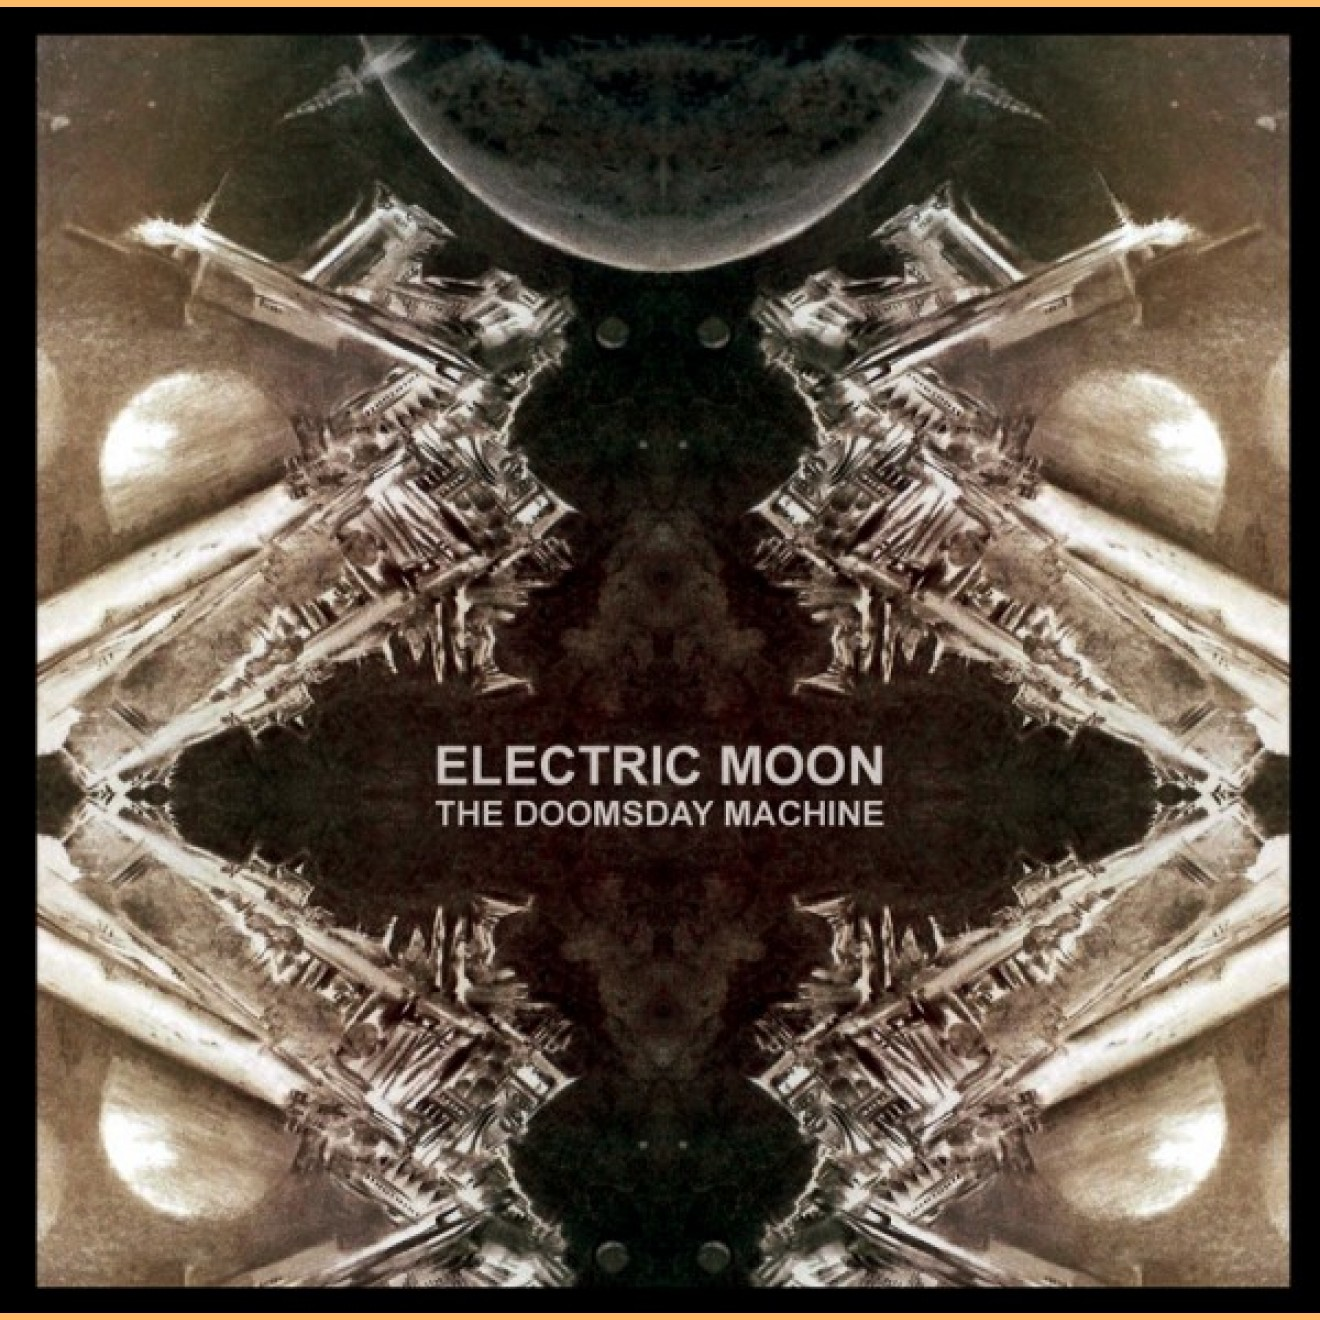 ELECTRIC MOON - the doomsday machine 2-LP gelb